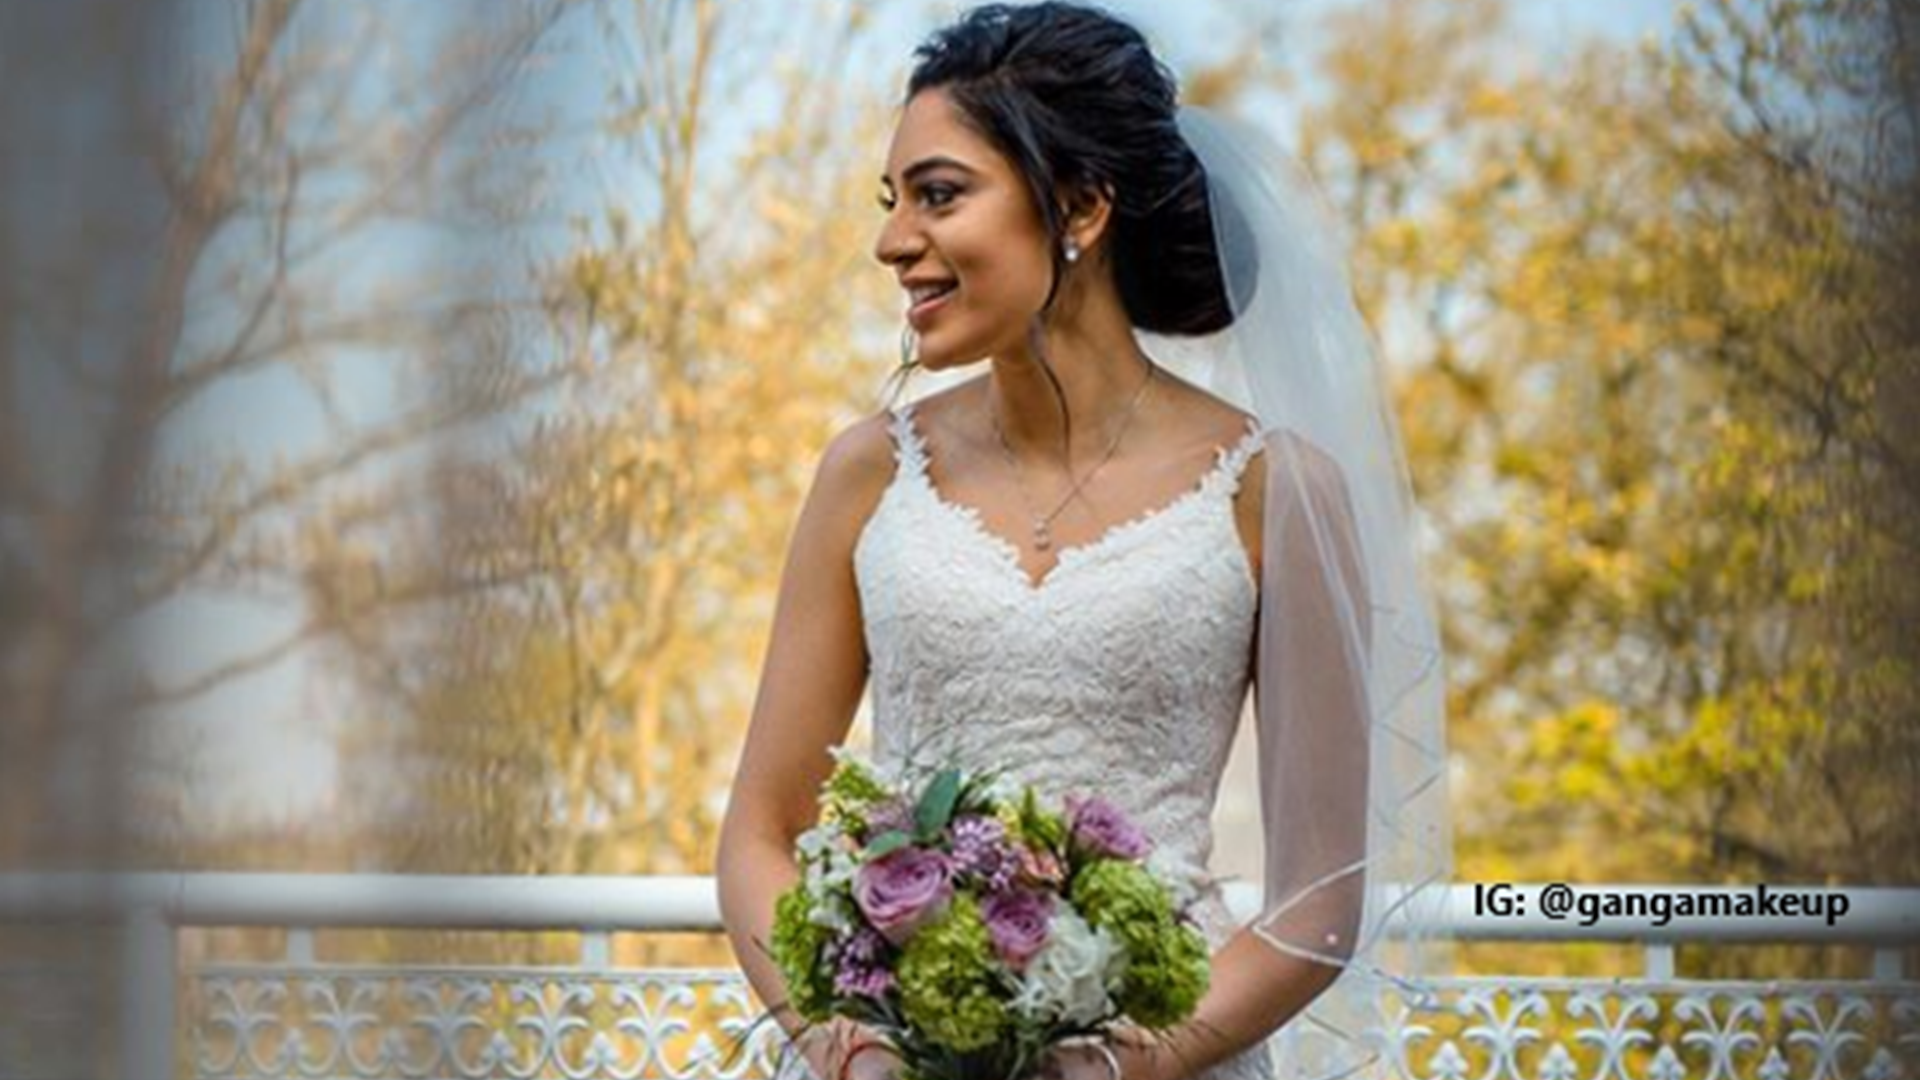 Bride with her hair and make up done is standing on a white balcony in front of trees in her wedding dress and veil and holding her bouquet of flowers